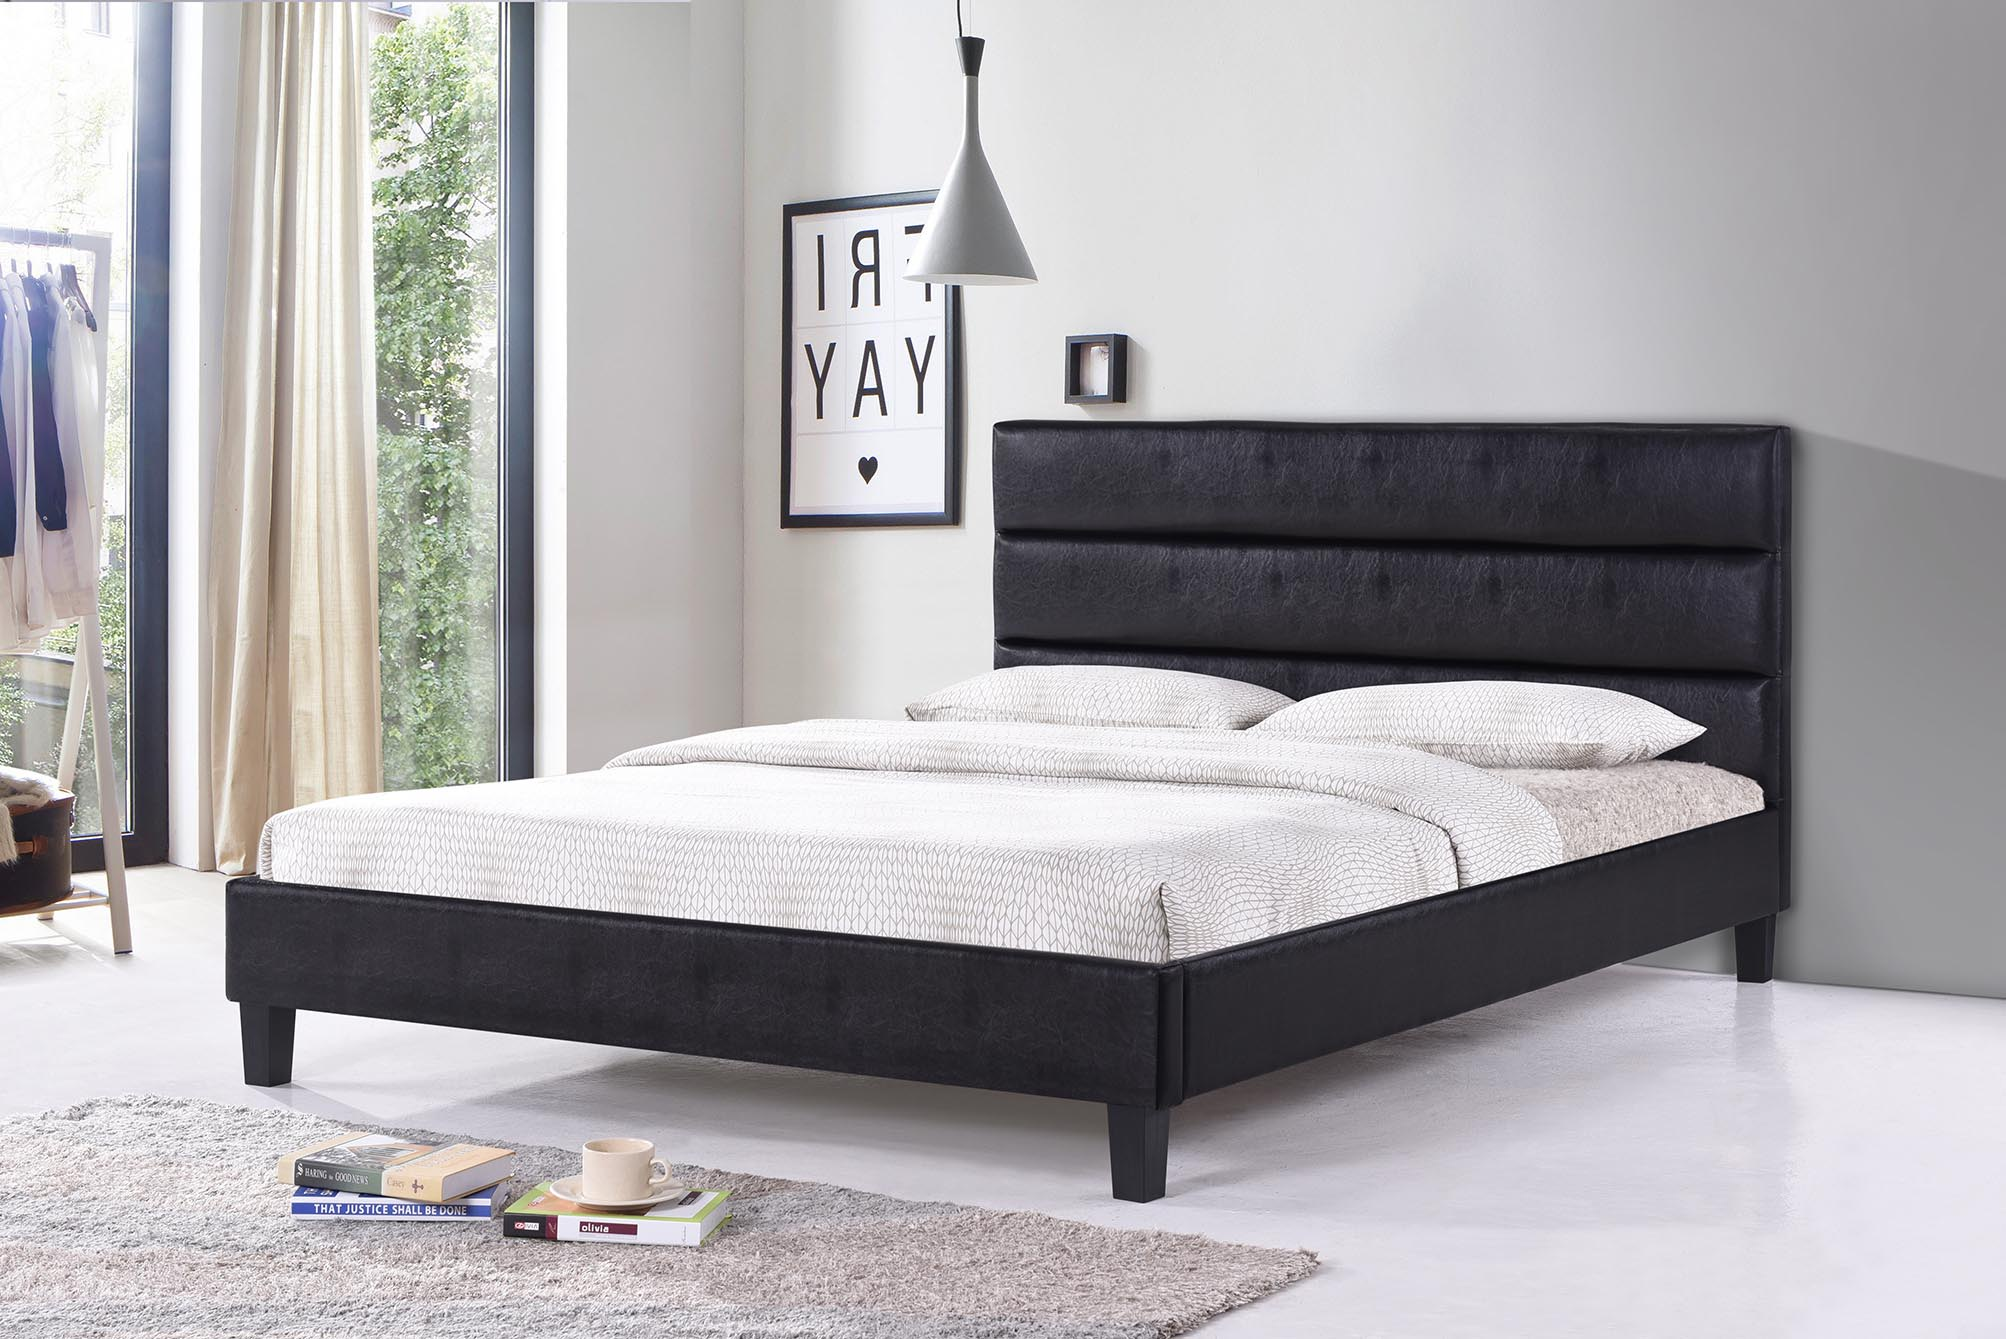 Beds Lifestyle Furniture